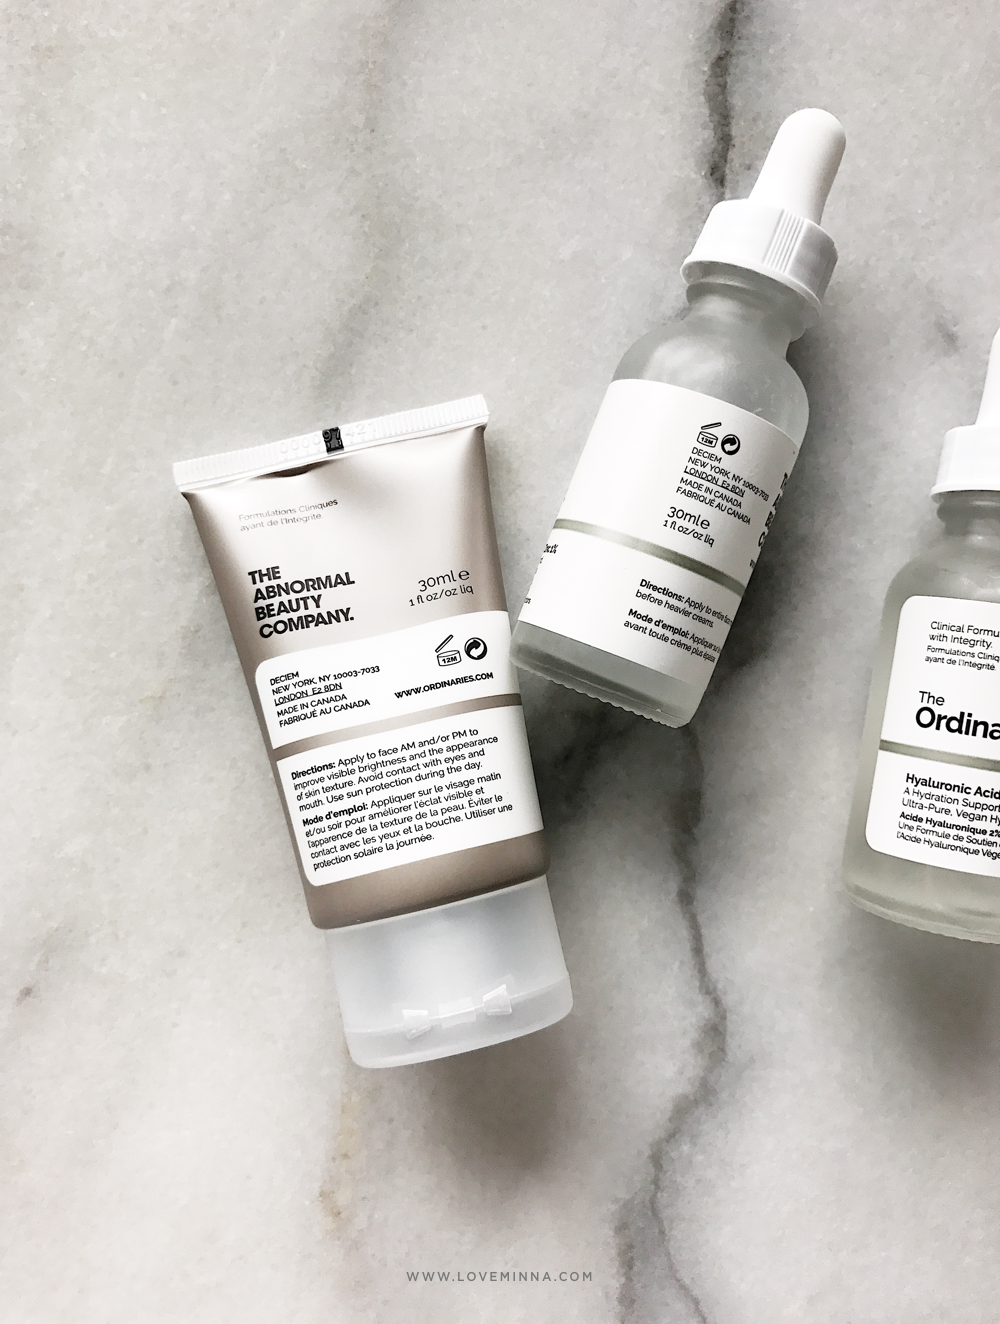 The Ordinary Azelaic Acid Suspension Niacinamide Hyaluronic Acid